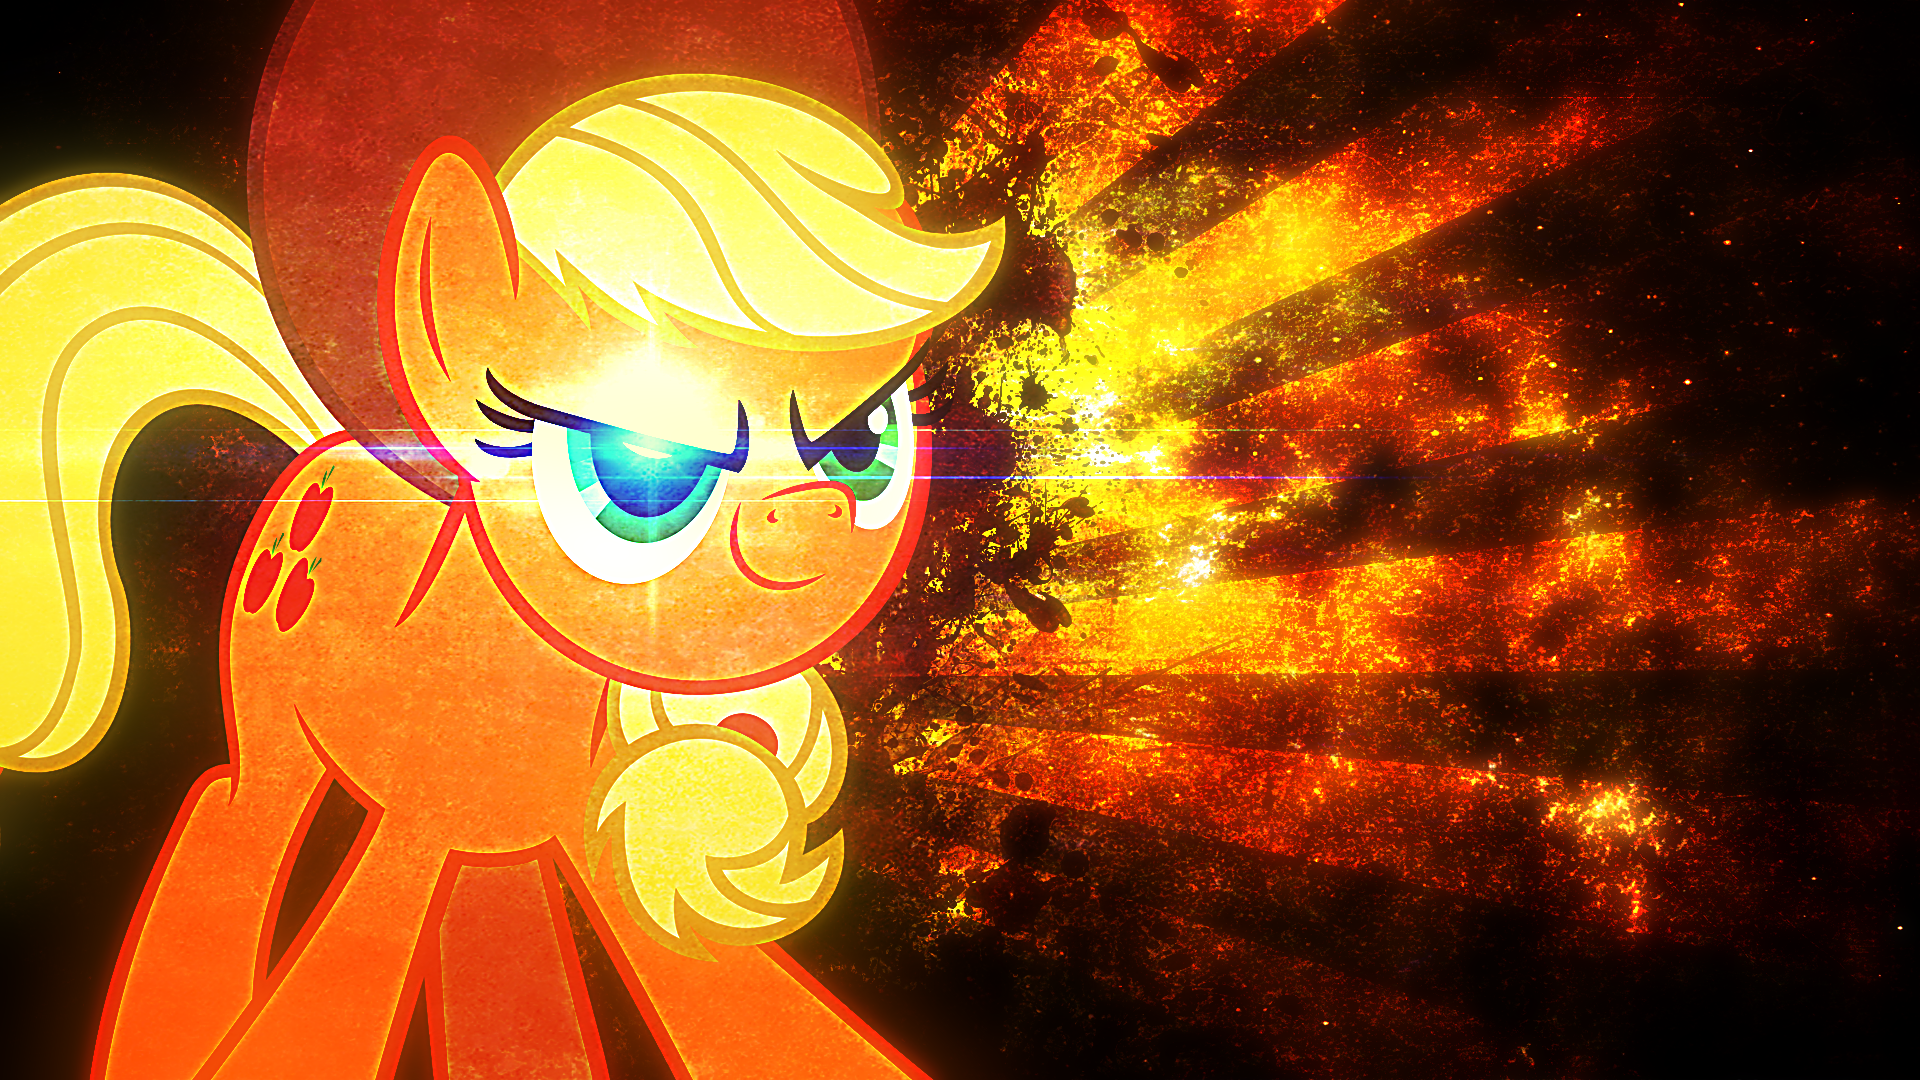 20 Creepy Applejack Wallpaper Pictures And Ideas On Meta Networks